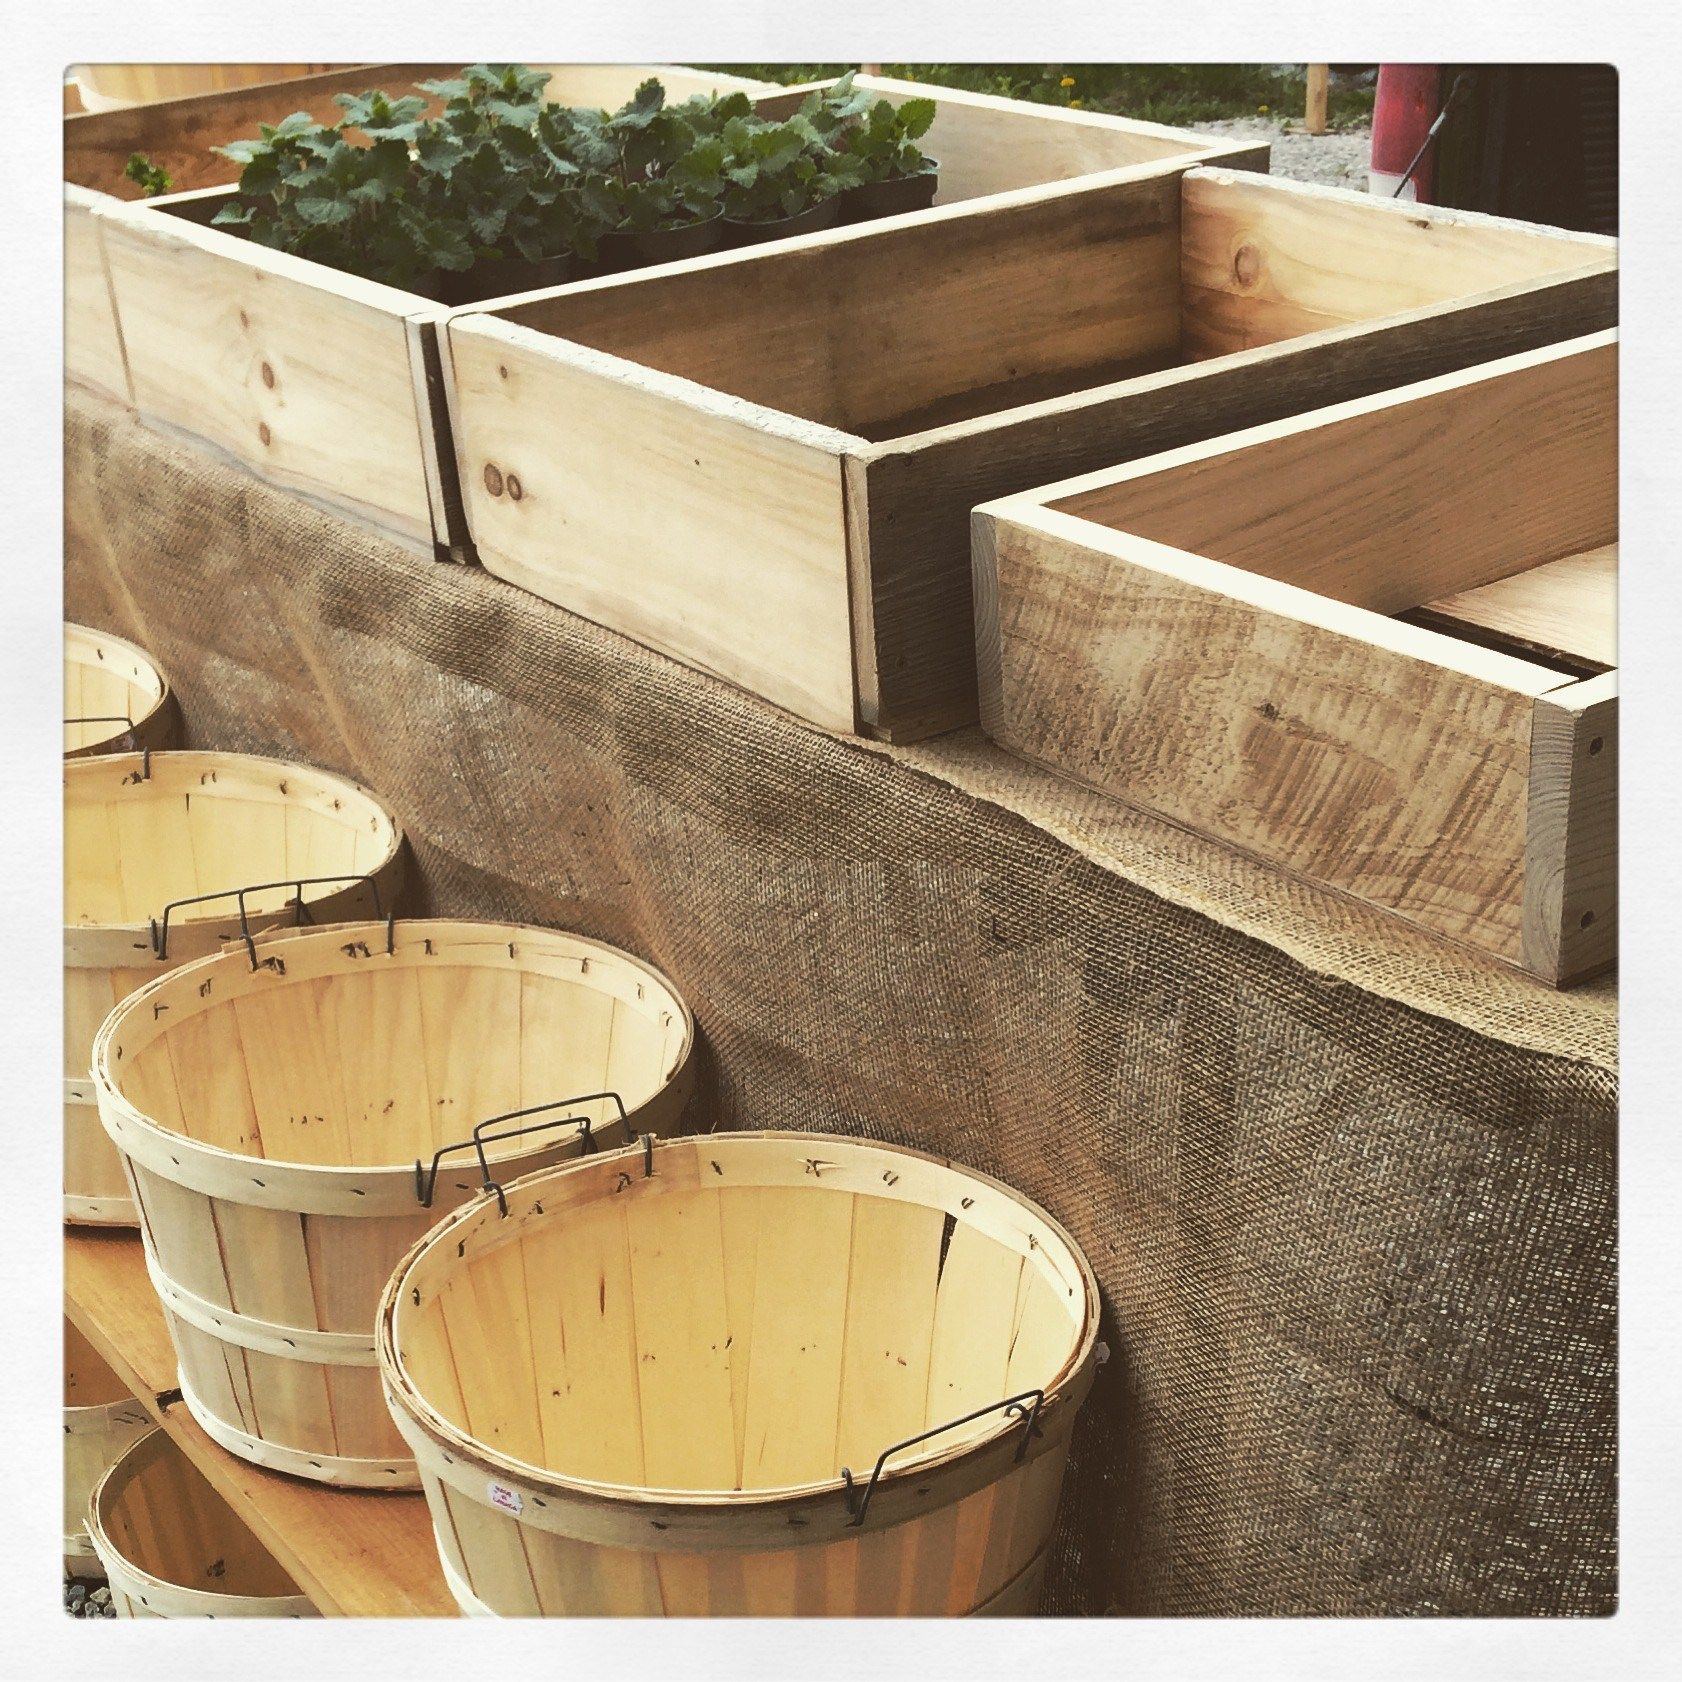 Wooden crates and bushel baskets for farmers market display More & Wooden crates and bushel baskets for farmers market display ... Aboutintivar.Com